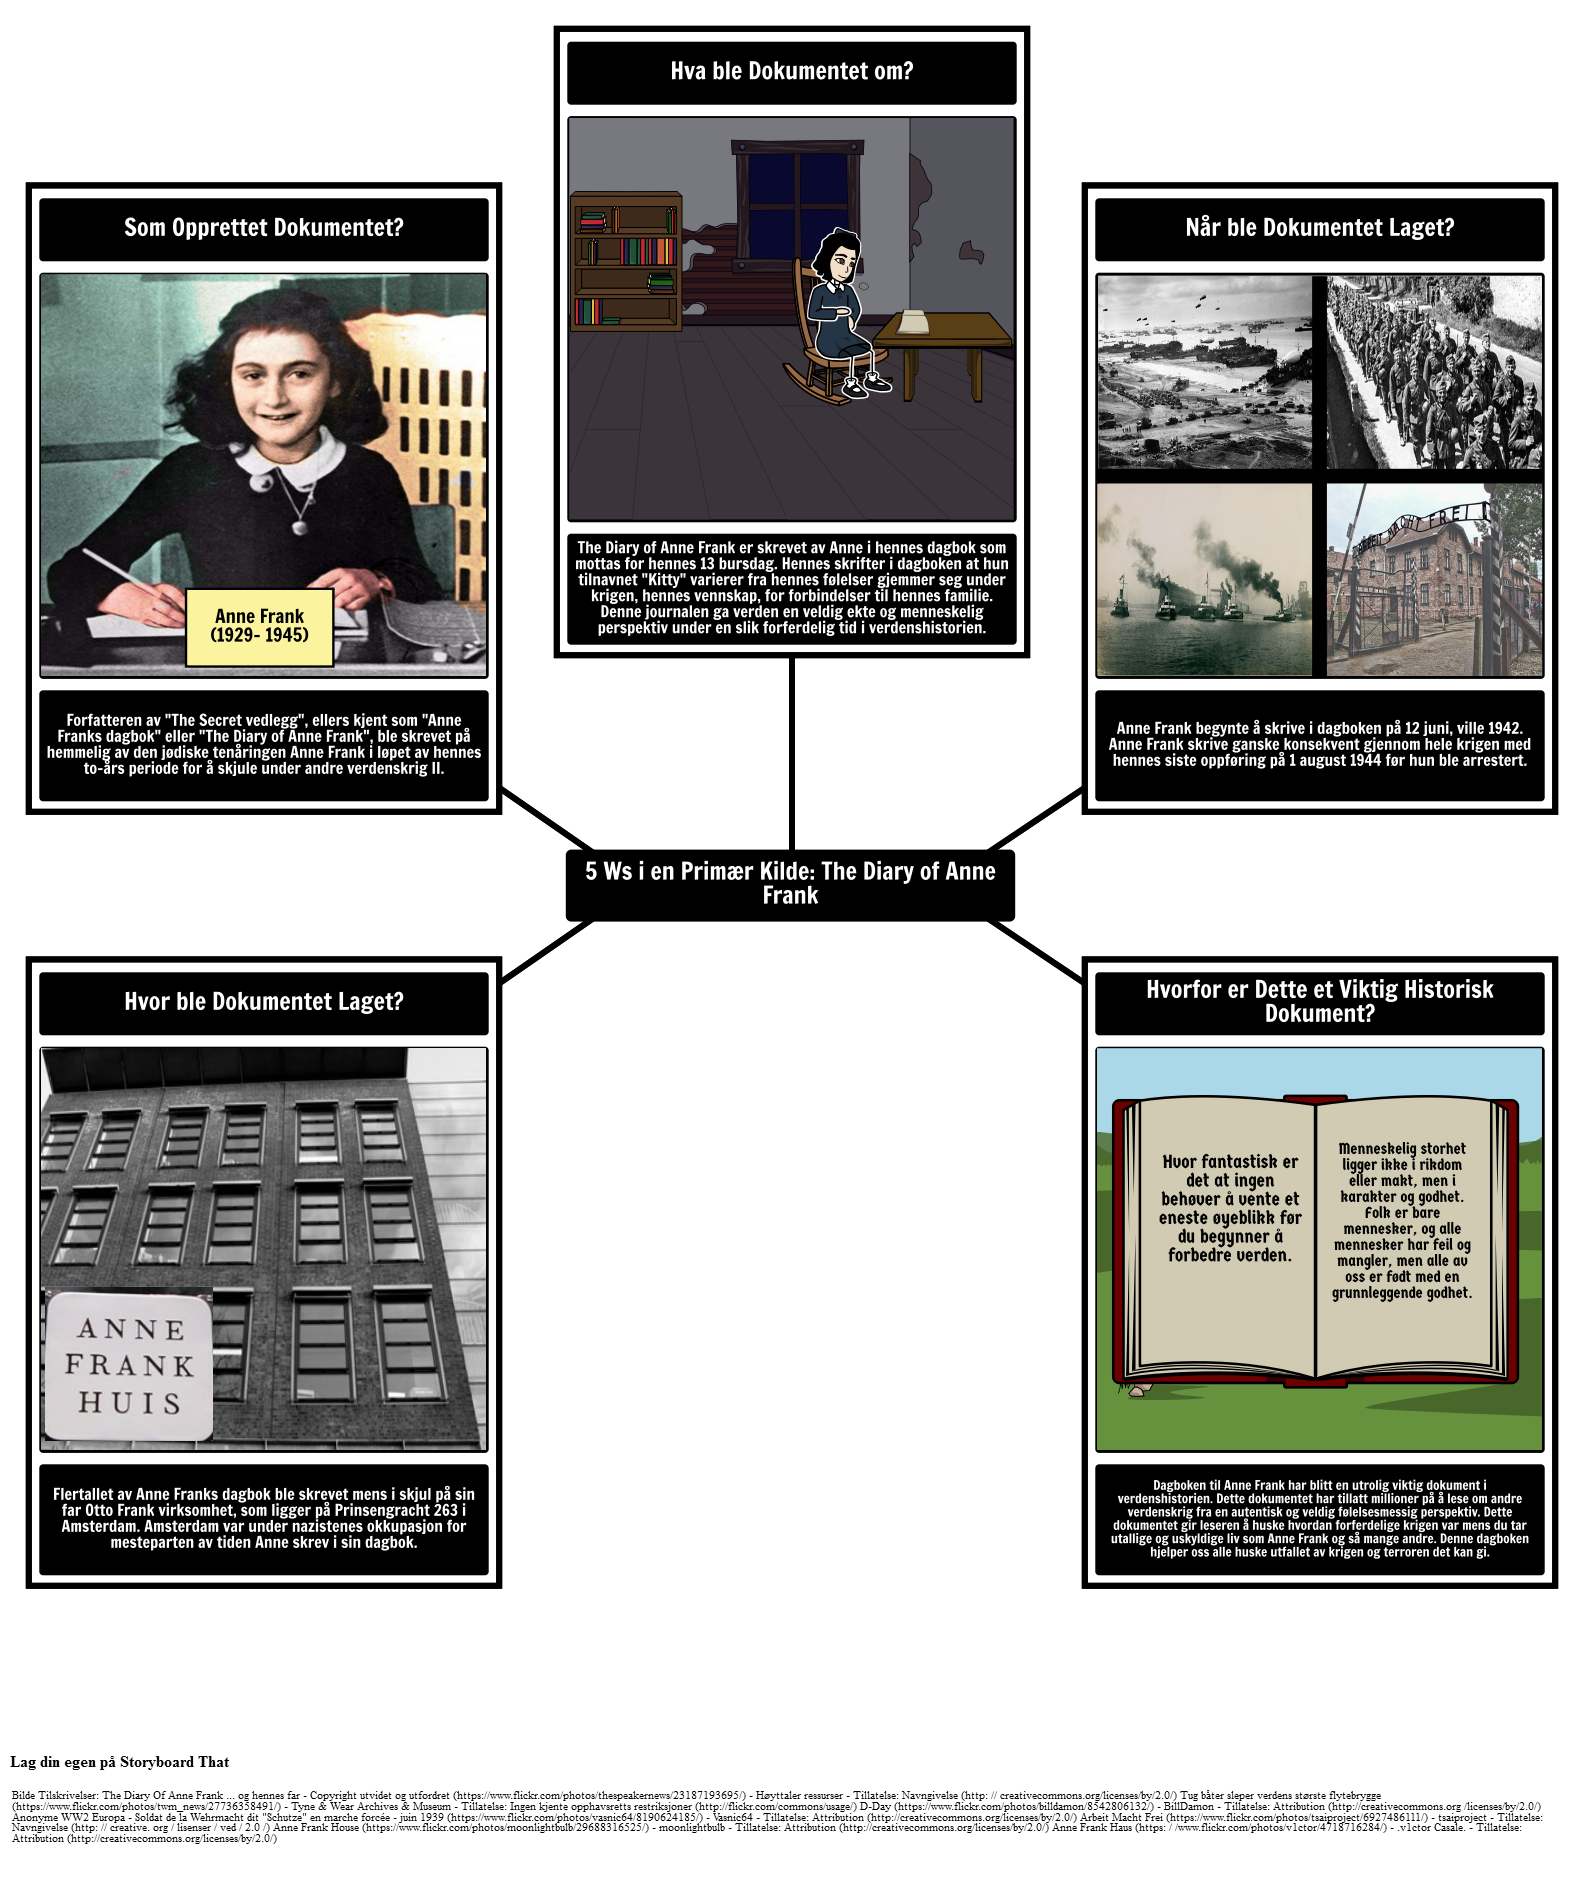 Primær Kilde 5Ws: The Diary of Anne Frank